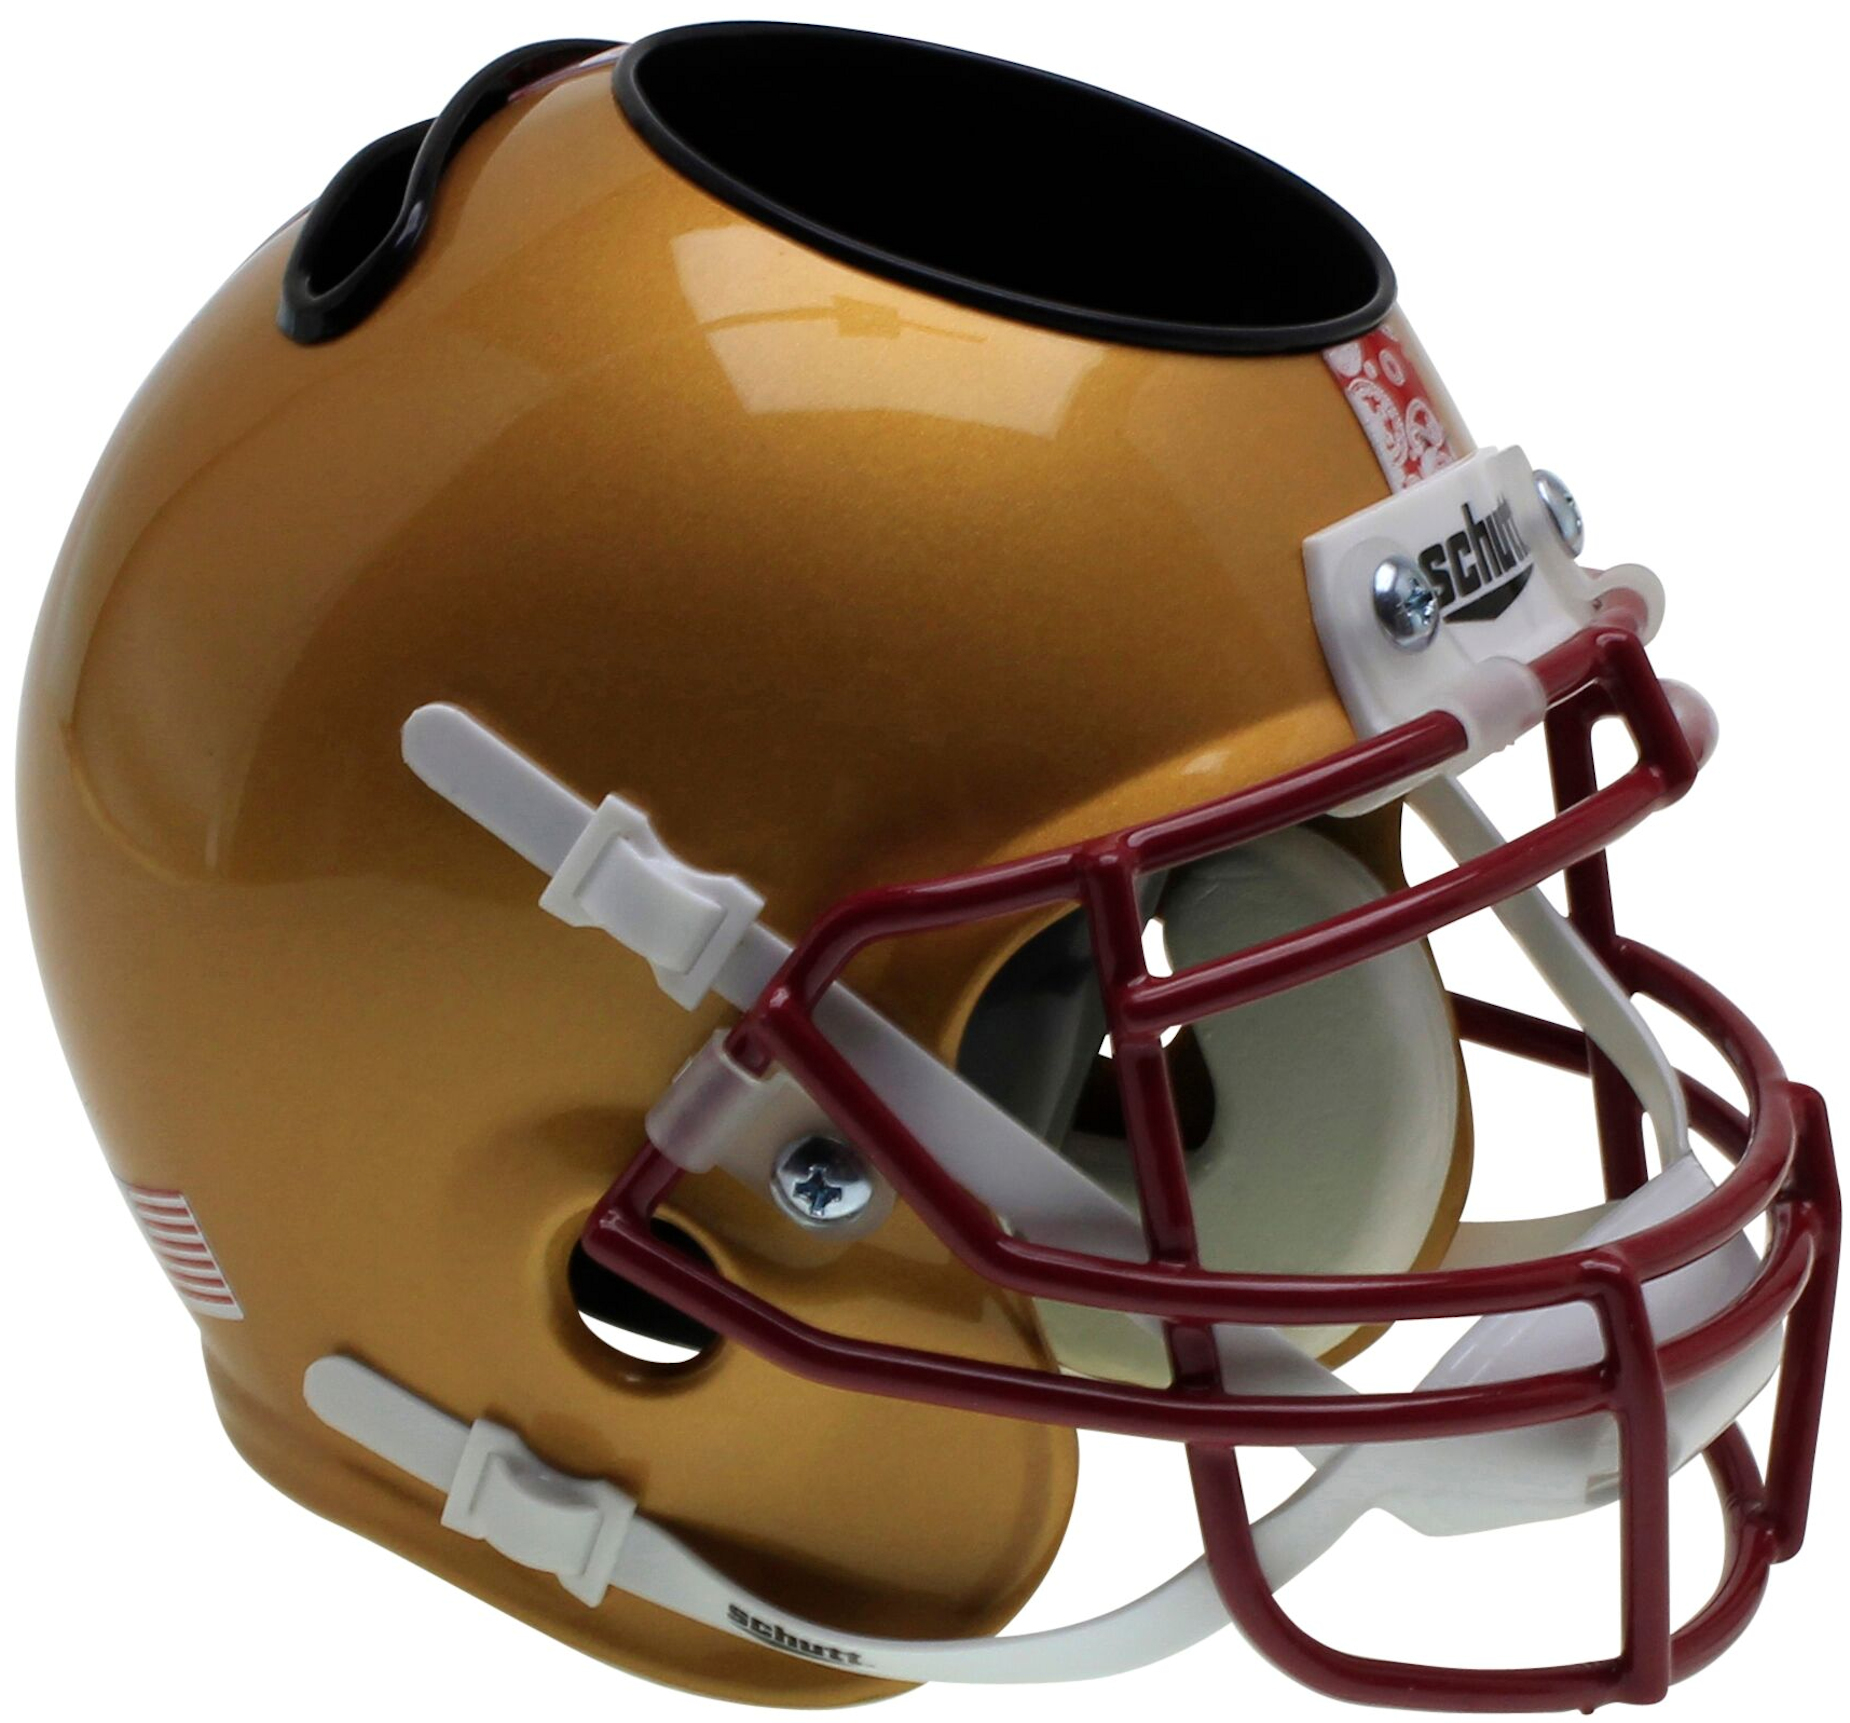 Boston College Eagles Miniature Football Helmet Desk Caddy <B>Gold</B>